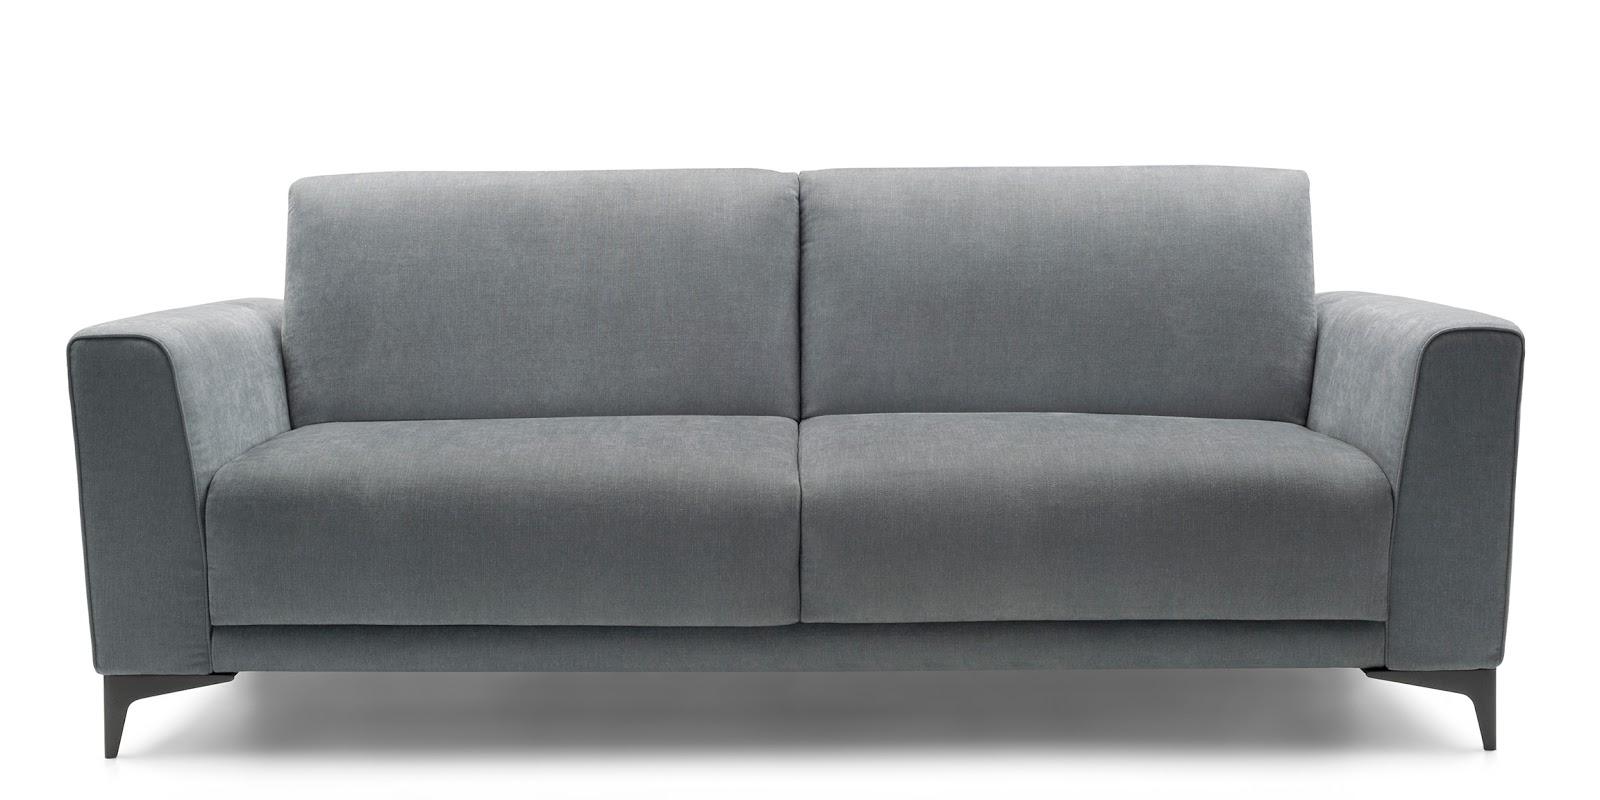 Sofa Dry Cleaner In Delhi Cost To Reupholster Dublin Beds That Look Like Sofas Daybeds 59